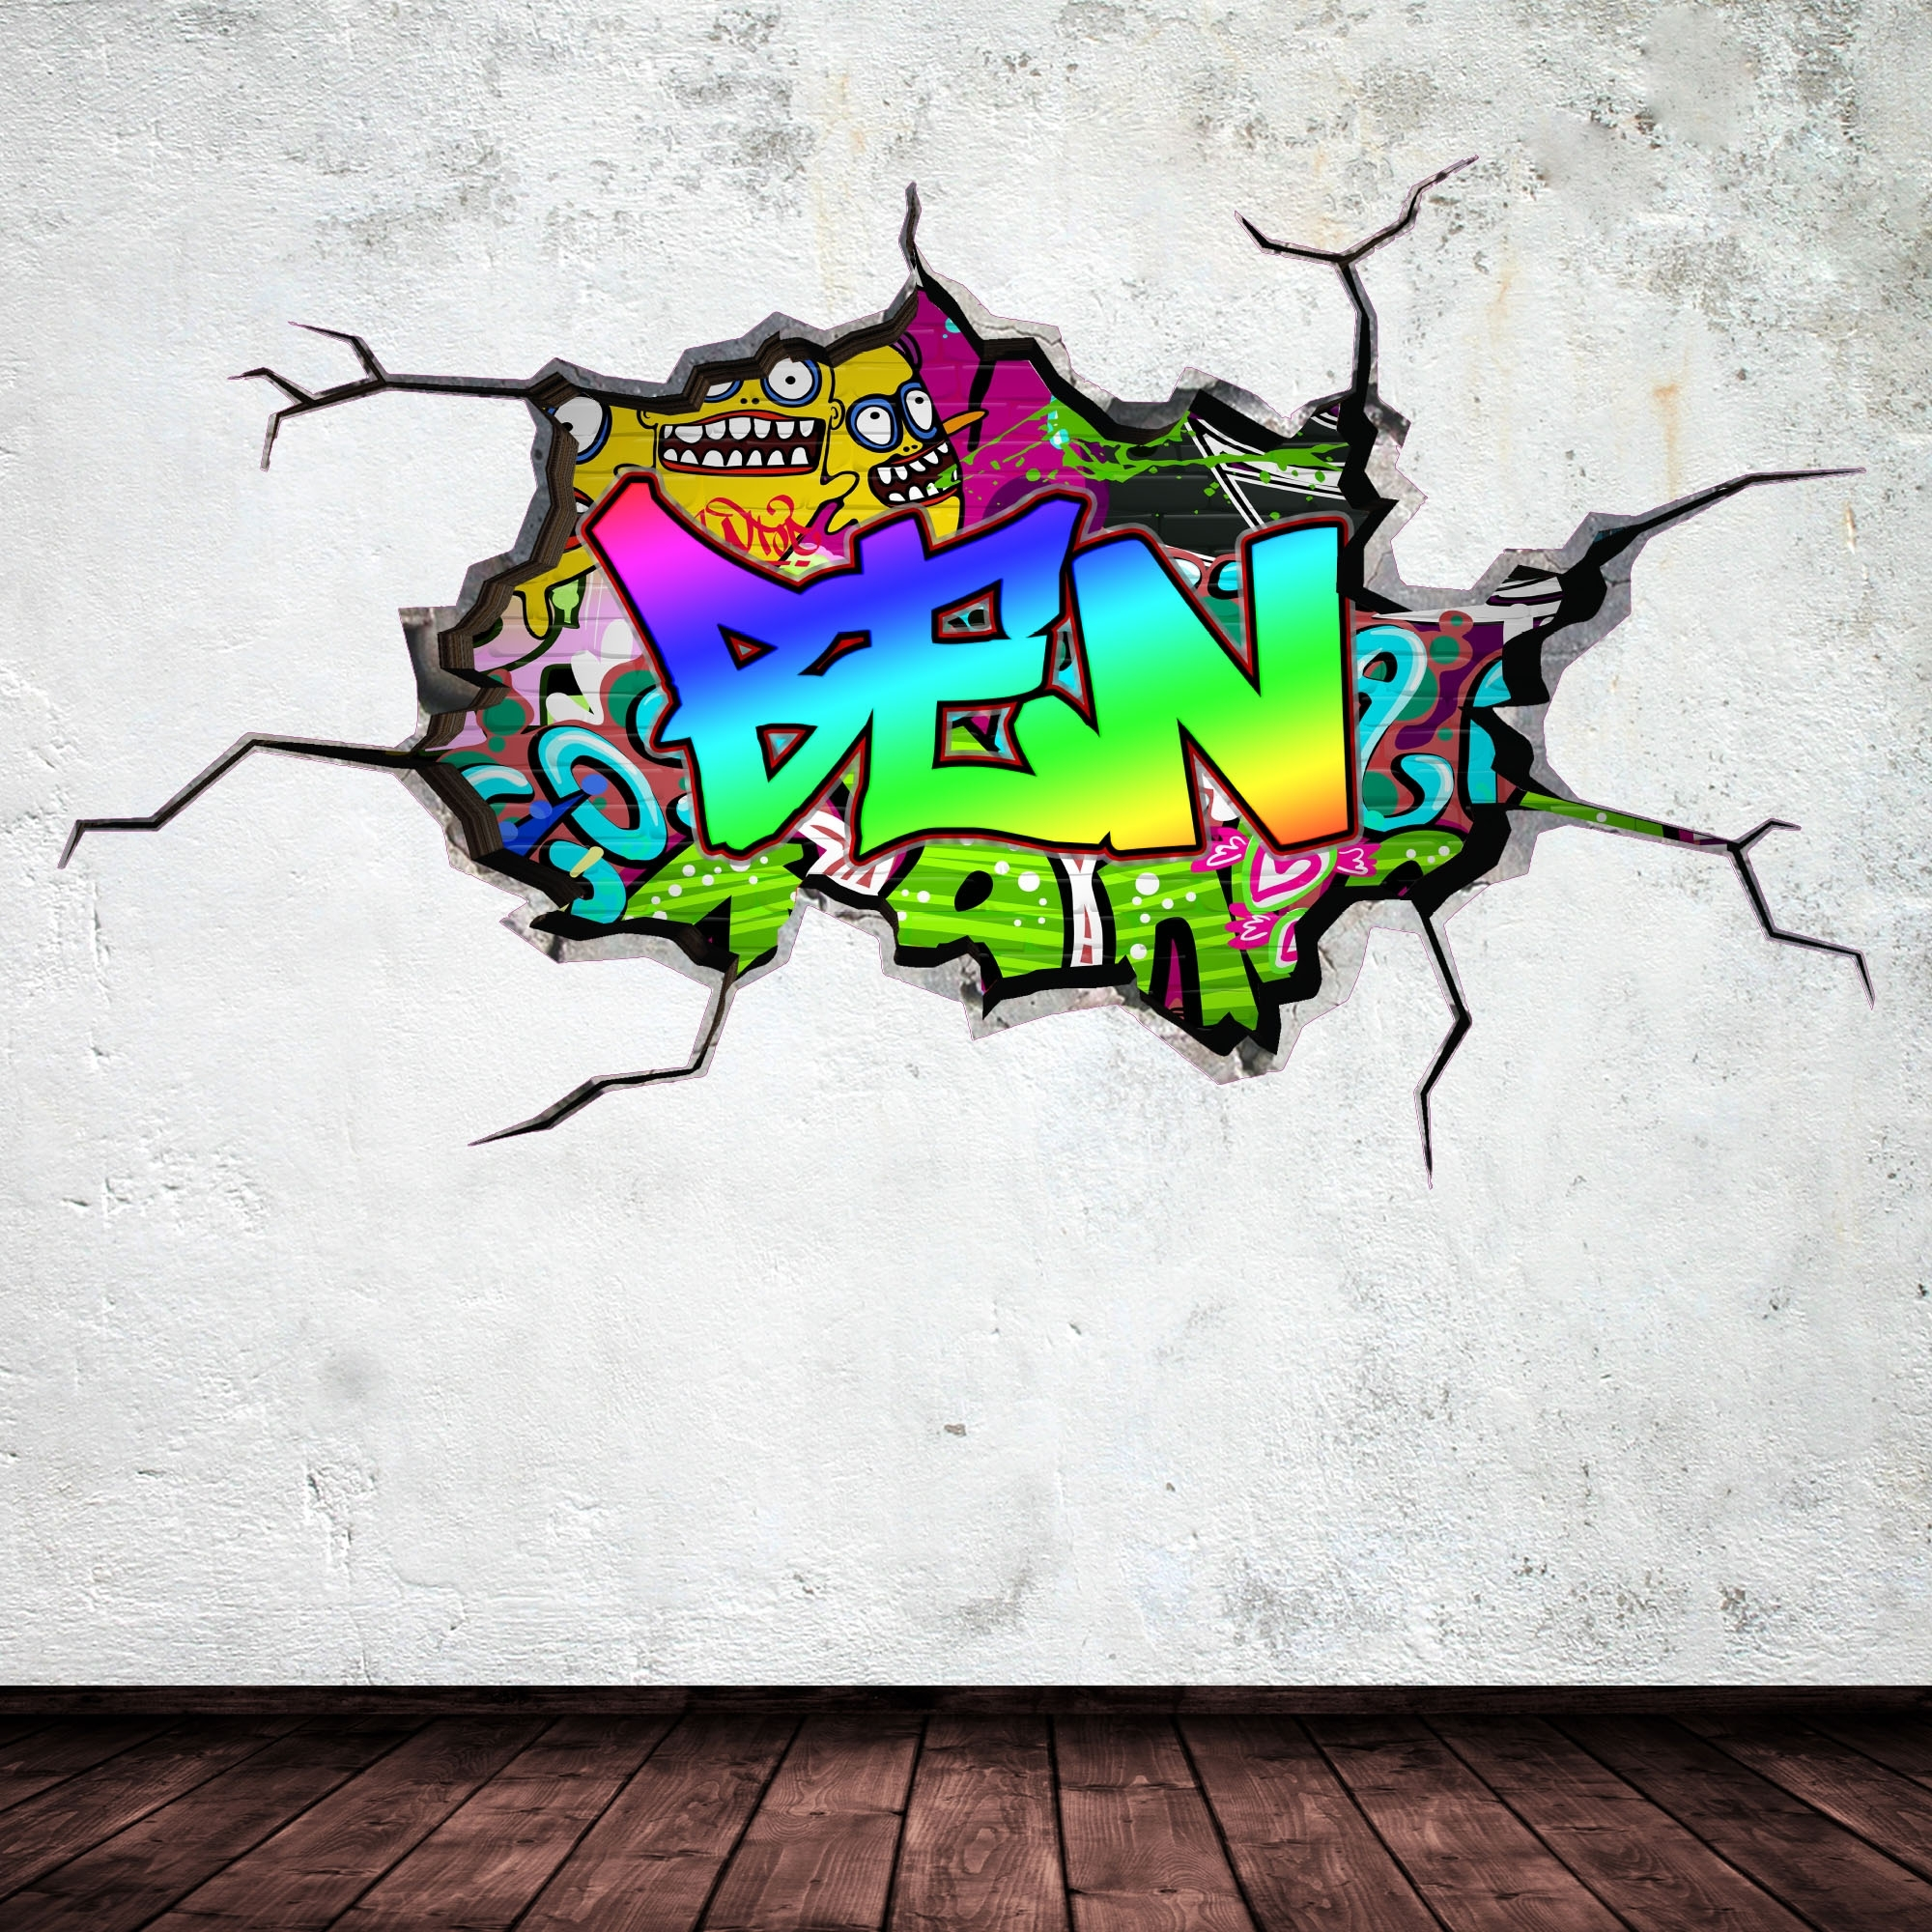 Full Colour Personalised 3D Graffiti Name Cracked Wall Art Stickers Inside Most Recently Released Name Wall Art (View 4 of 20)